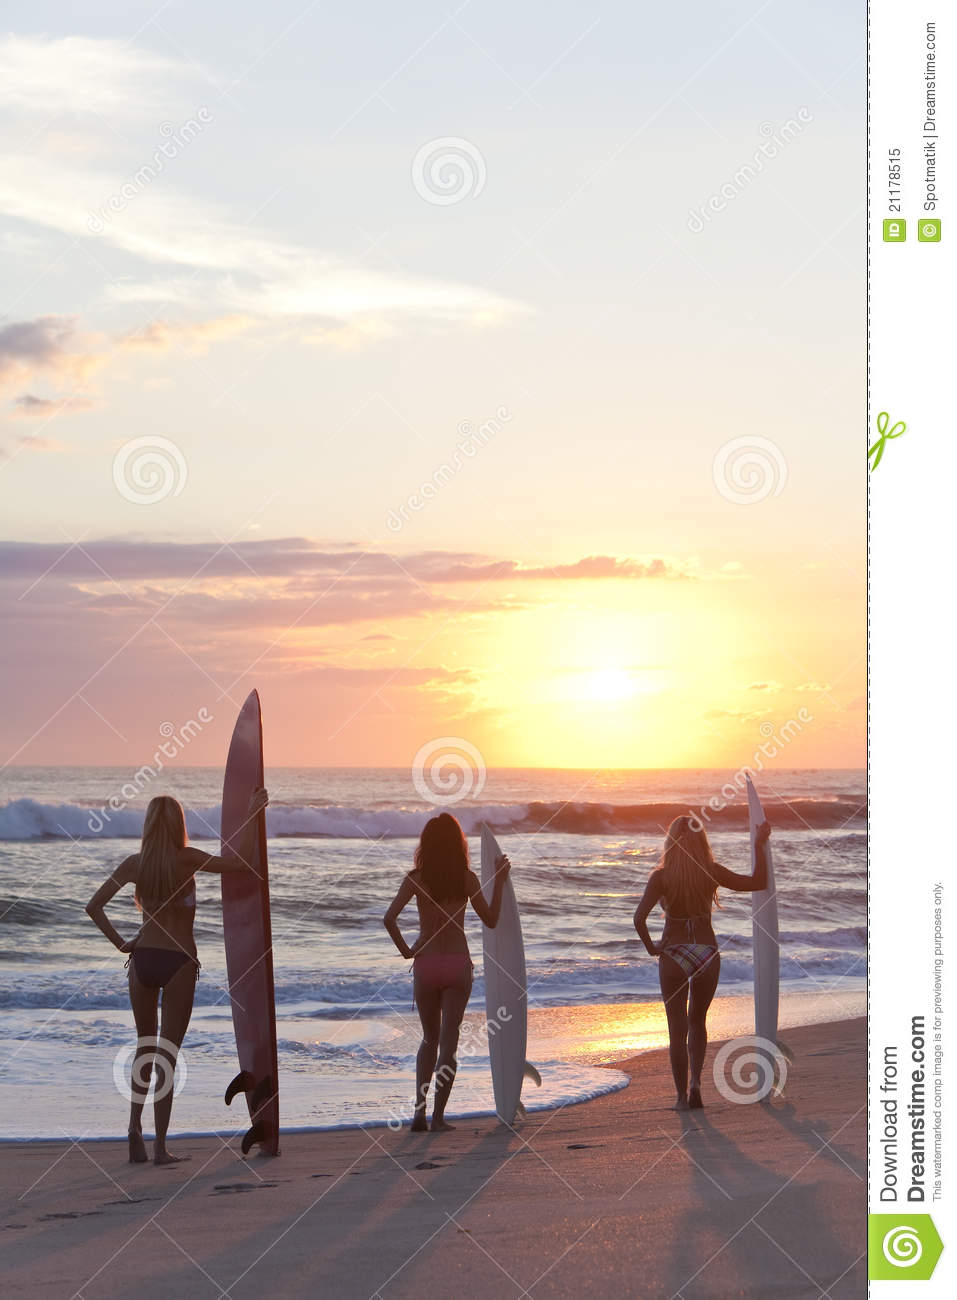 Women In Bikinis With Surfboards At Sunset Beach